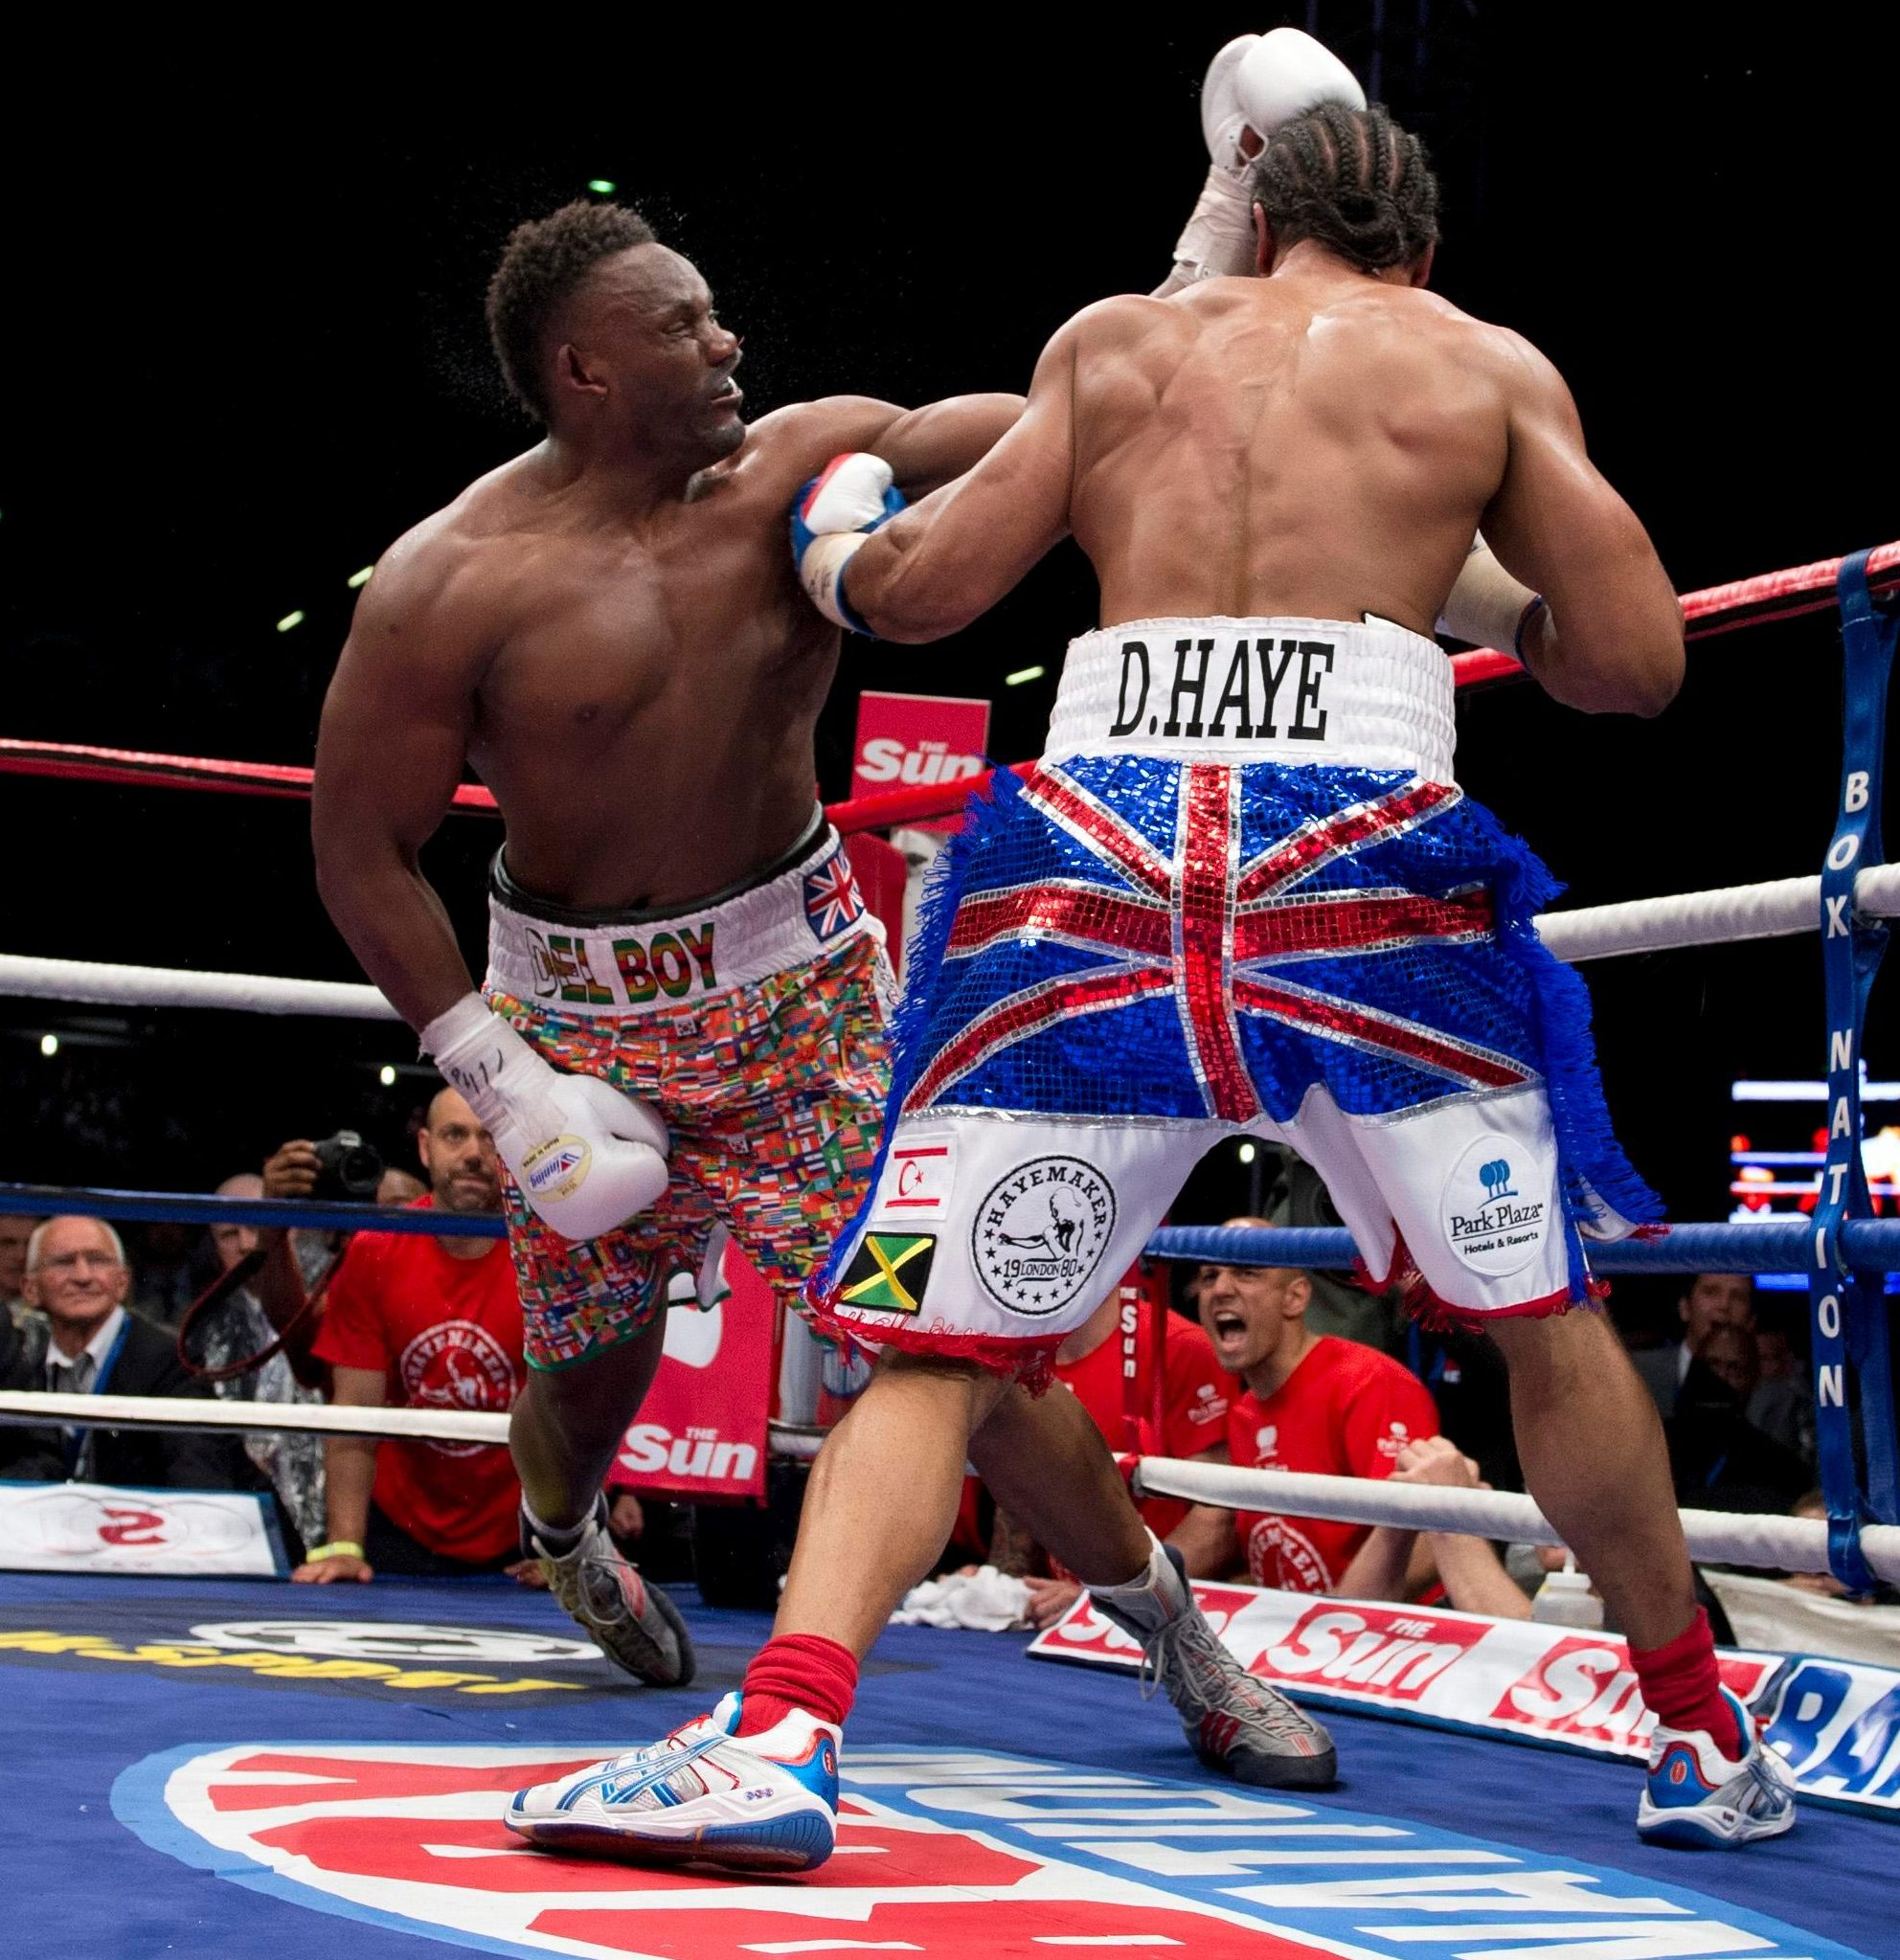 Chisora was knocked out in round five of the 2012 grudge match